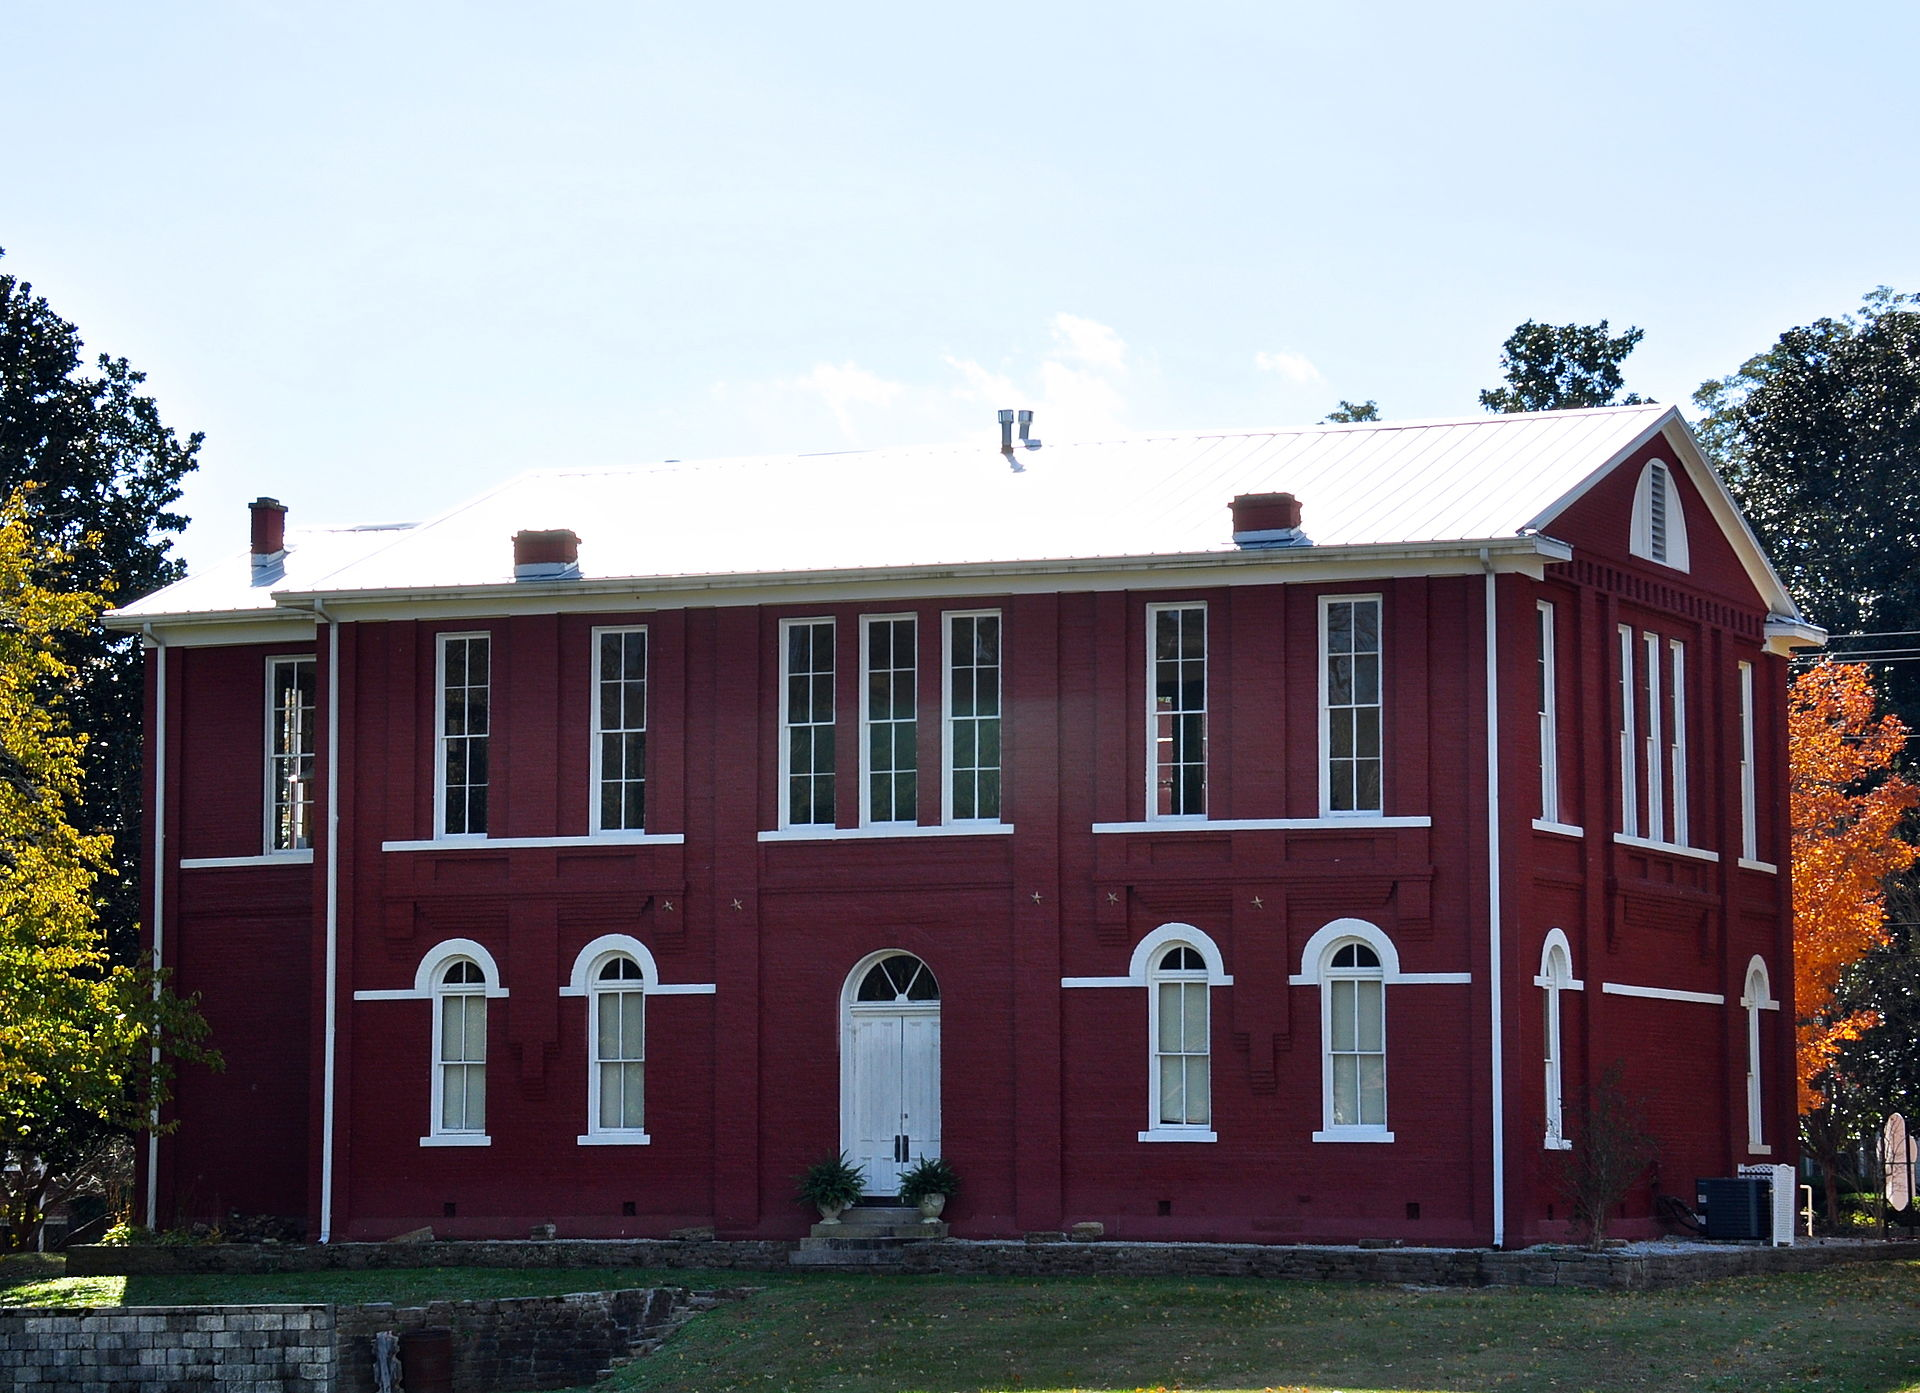 The Old Courthouse Museum was originally built in 1870 but was rebuilt in its current form in 1889.